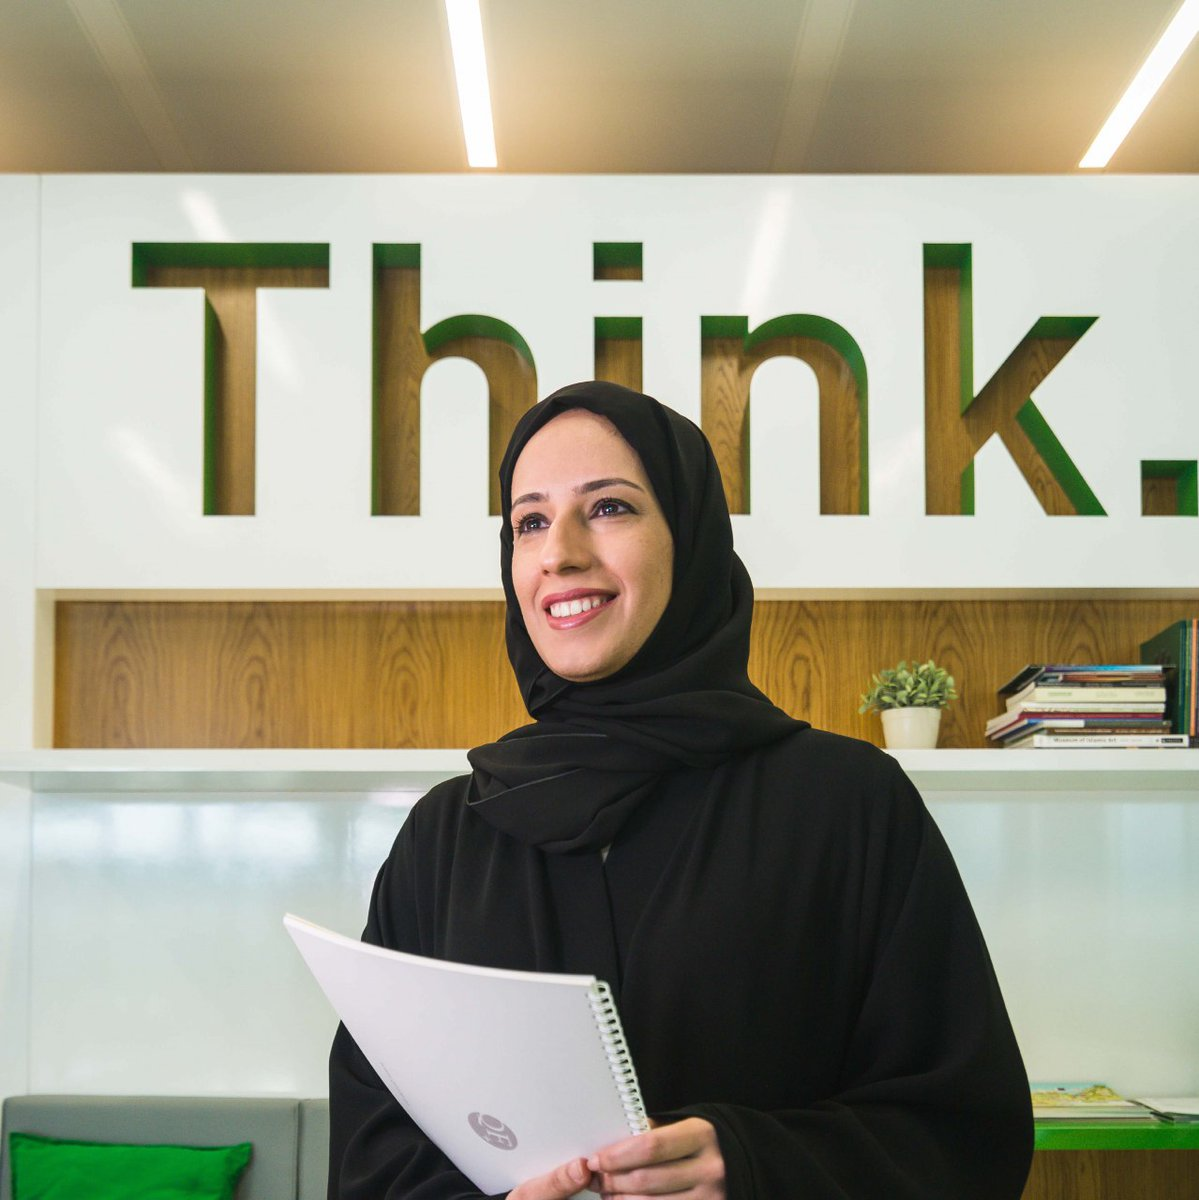 In our latest edition of Q Life Magazine, we learn how @QF had to undergo a digital transformation to combat the disruptions posed by the COVID-19 pandemic. Read our interview with Buthaina Al Nuaimi, President of the Pre-University Education below: https://t.co/0oPvphxK4i https://t.co/nCZaOgG0IW